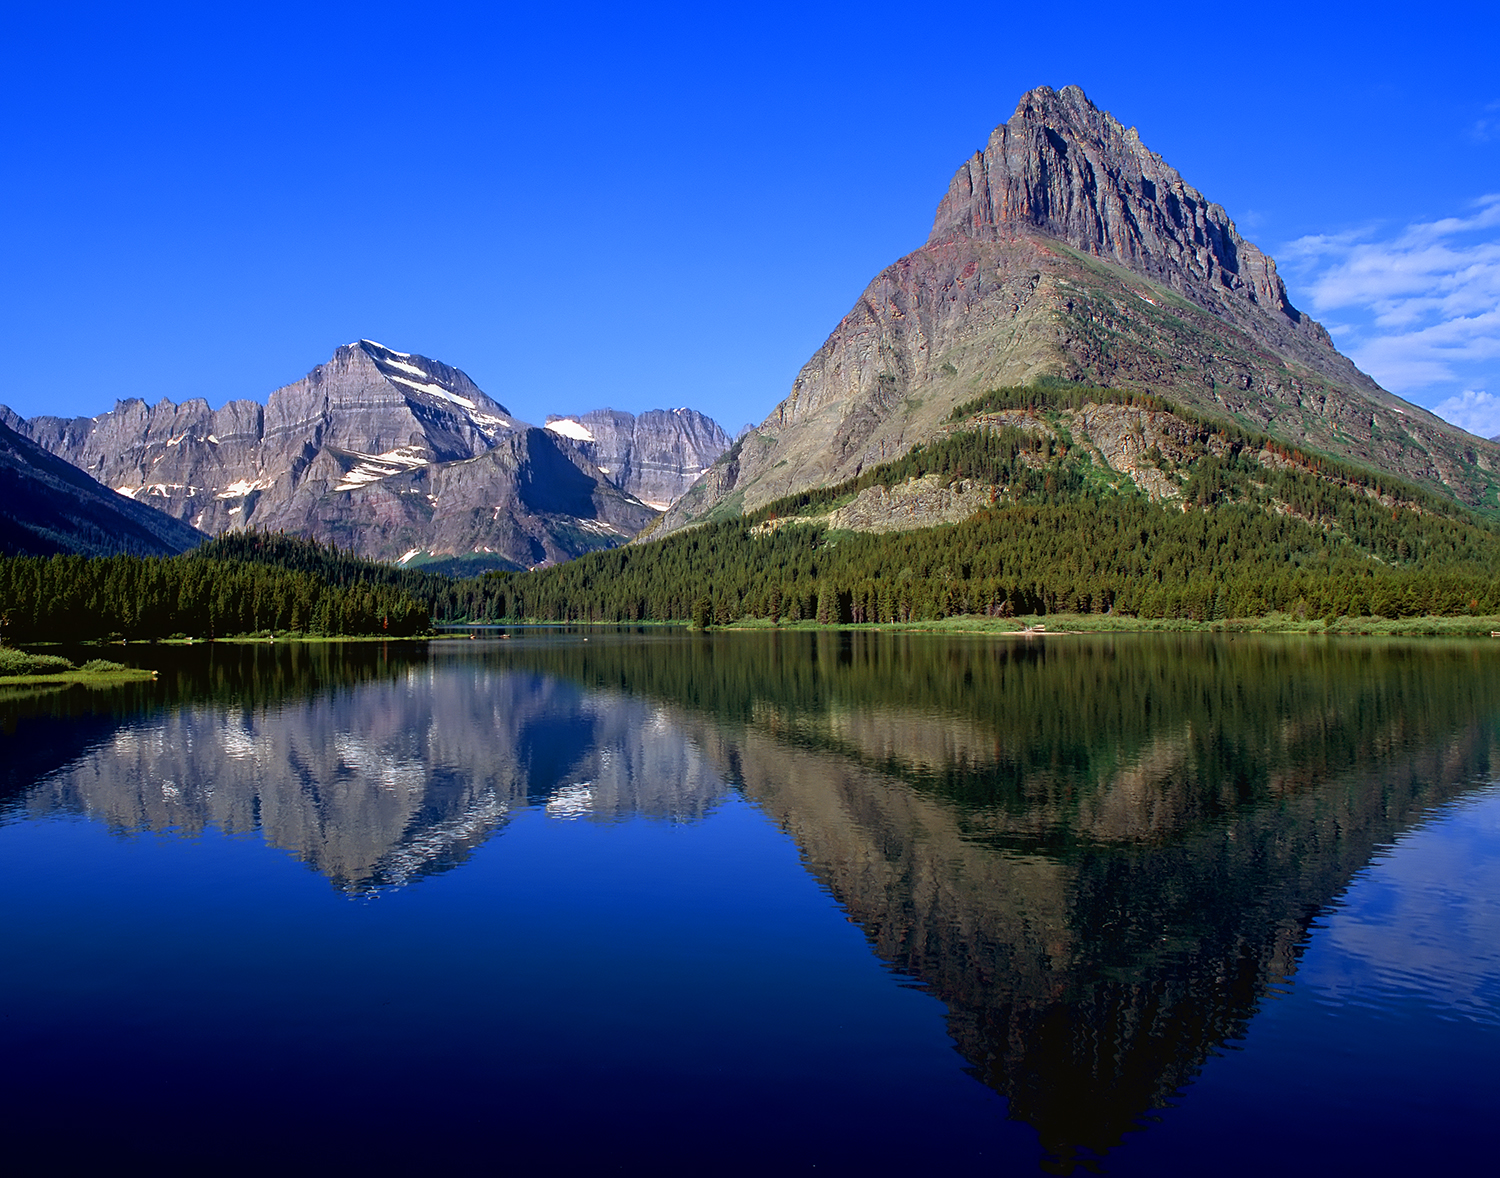 Mt. Gould & Swiftcurrent Lake